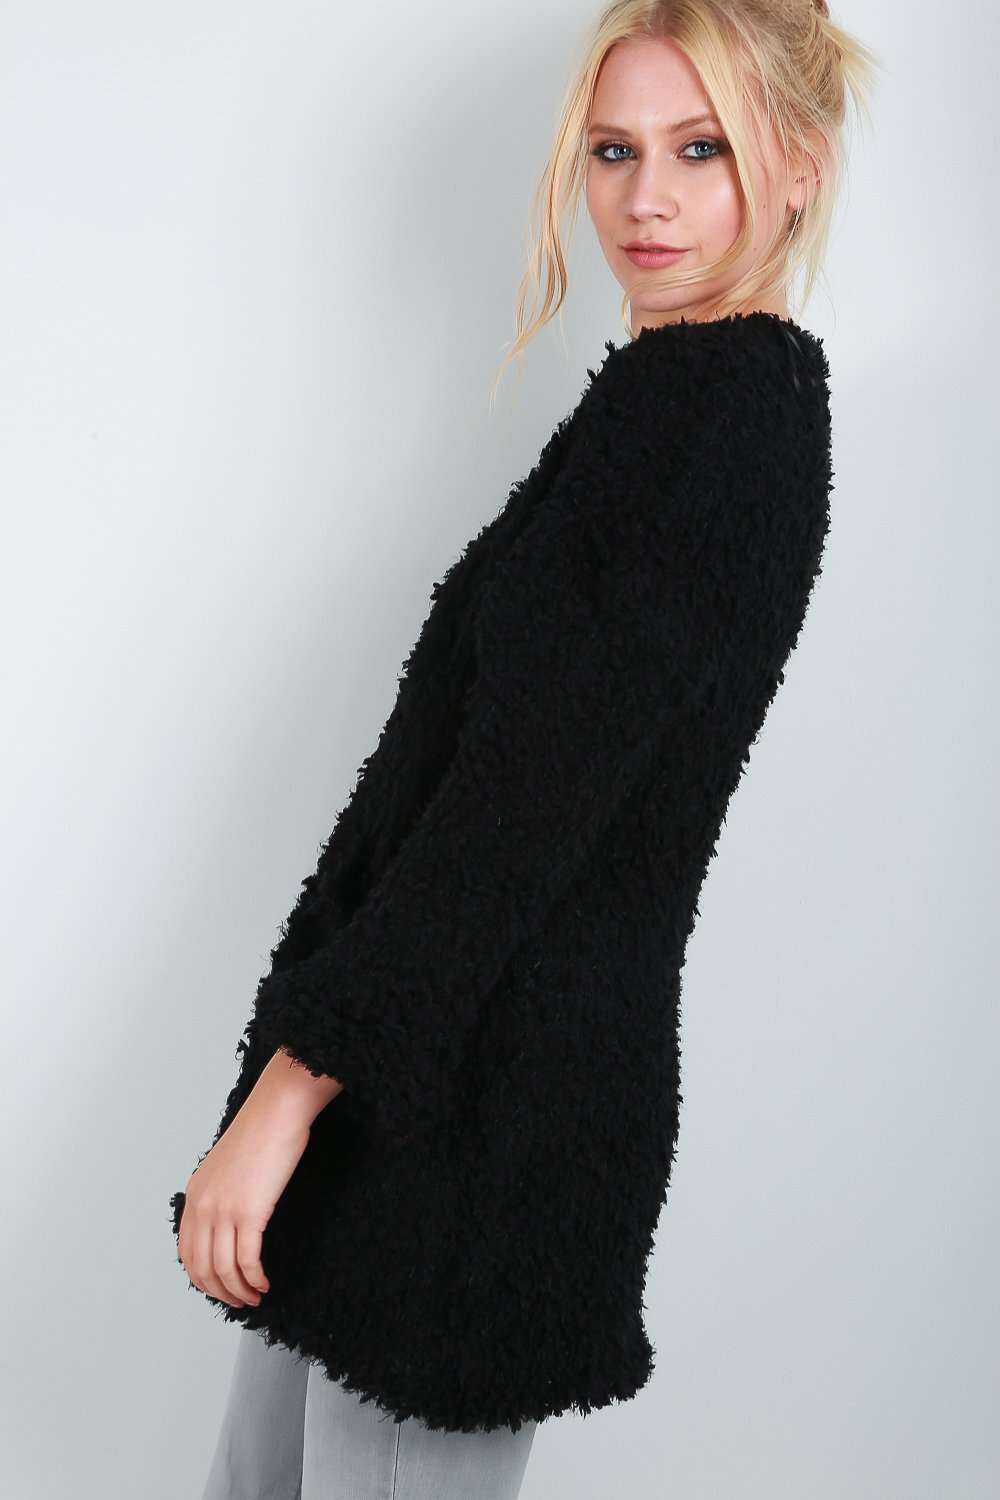 Ella Cropped Sleeve Fluffy Cardigan - bejealous-com